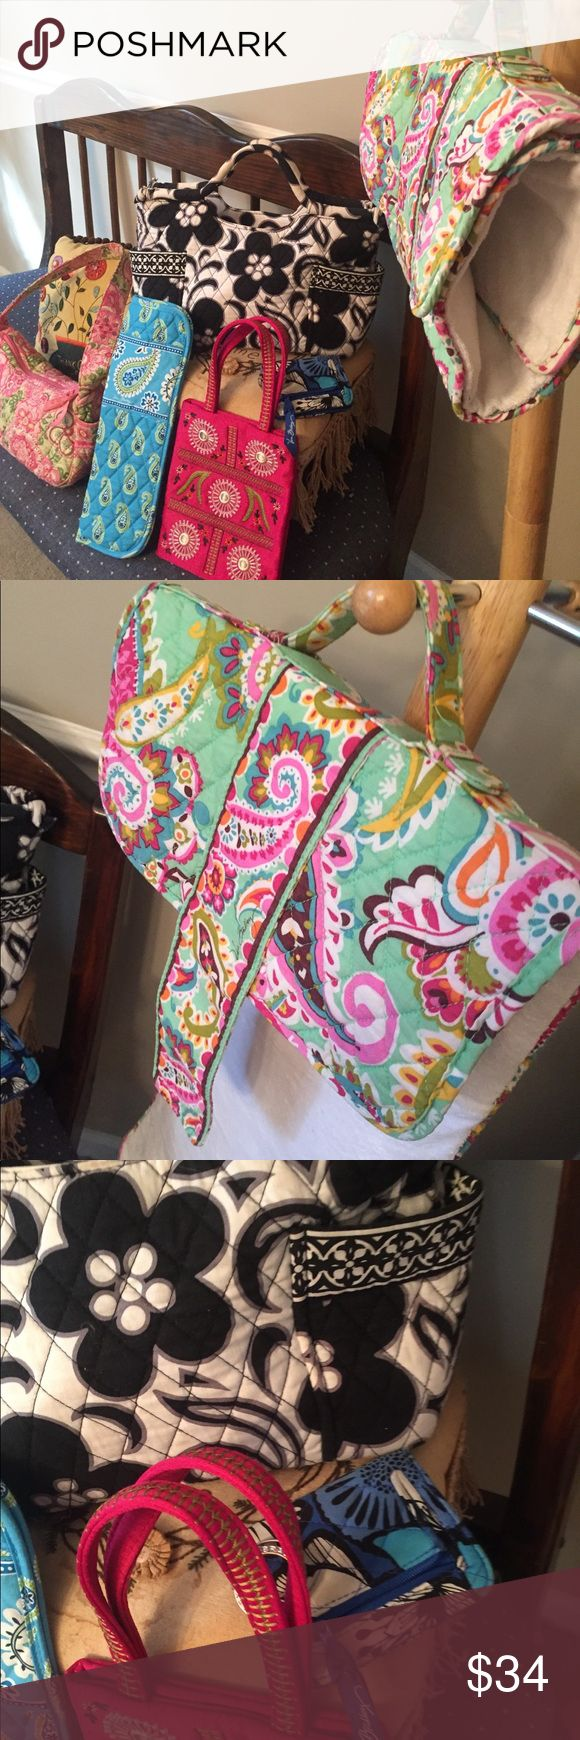 6 Pc Vera Bradley bundle 5 vera. The hot pink is Frankie and Johnny.  Tutti fruitty changing pad/clutch.  Great for the baby. Handbag. ID keychain  pink handbag. Hot iron case    Very nice. Clean lovely Vera Bradley Bags Shoulder Bags